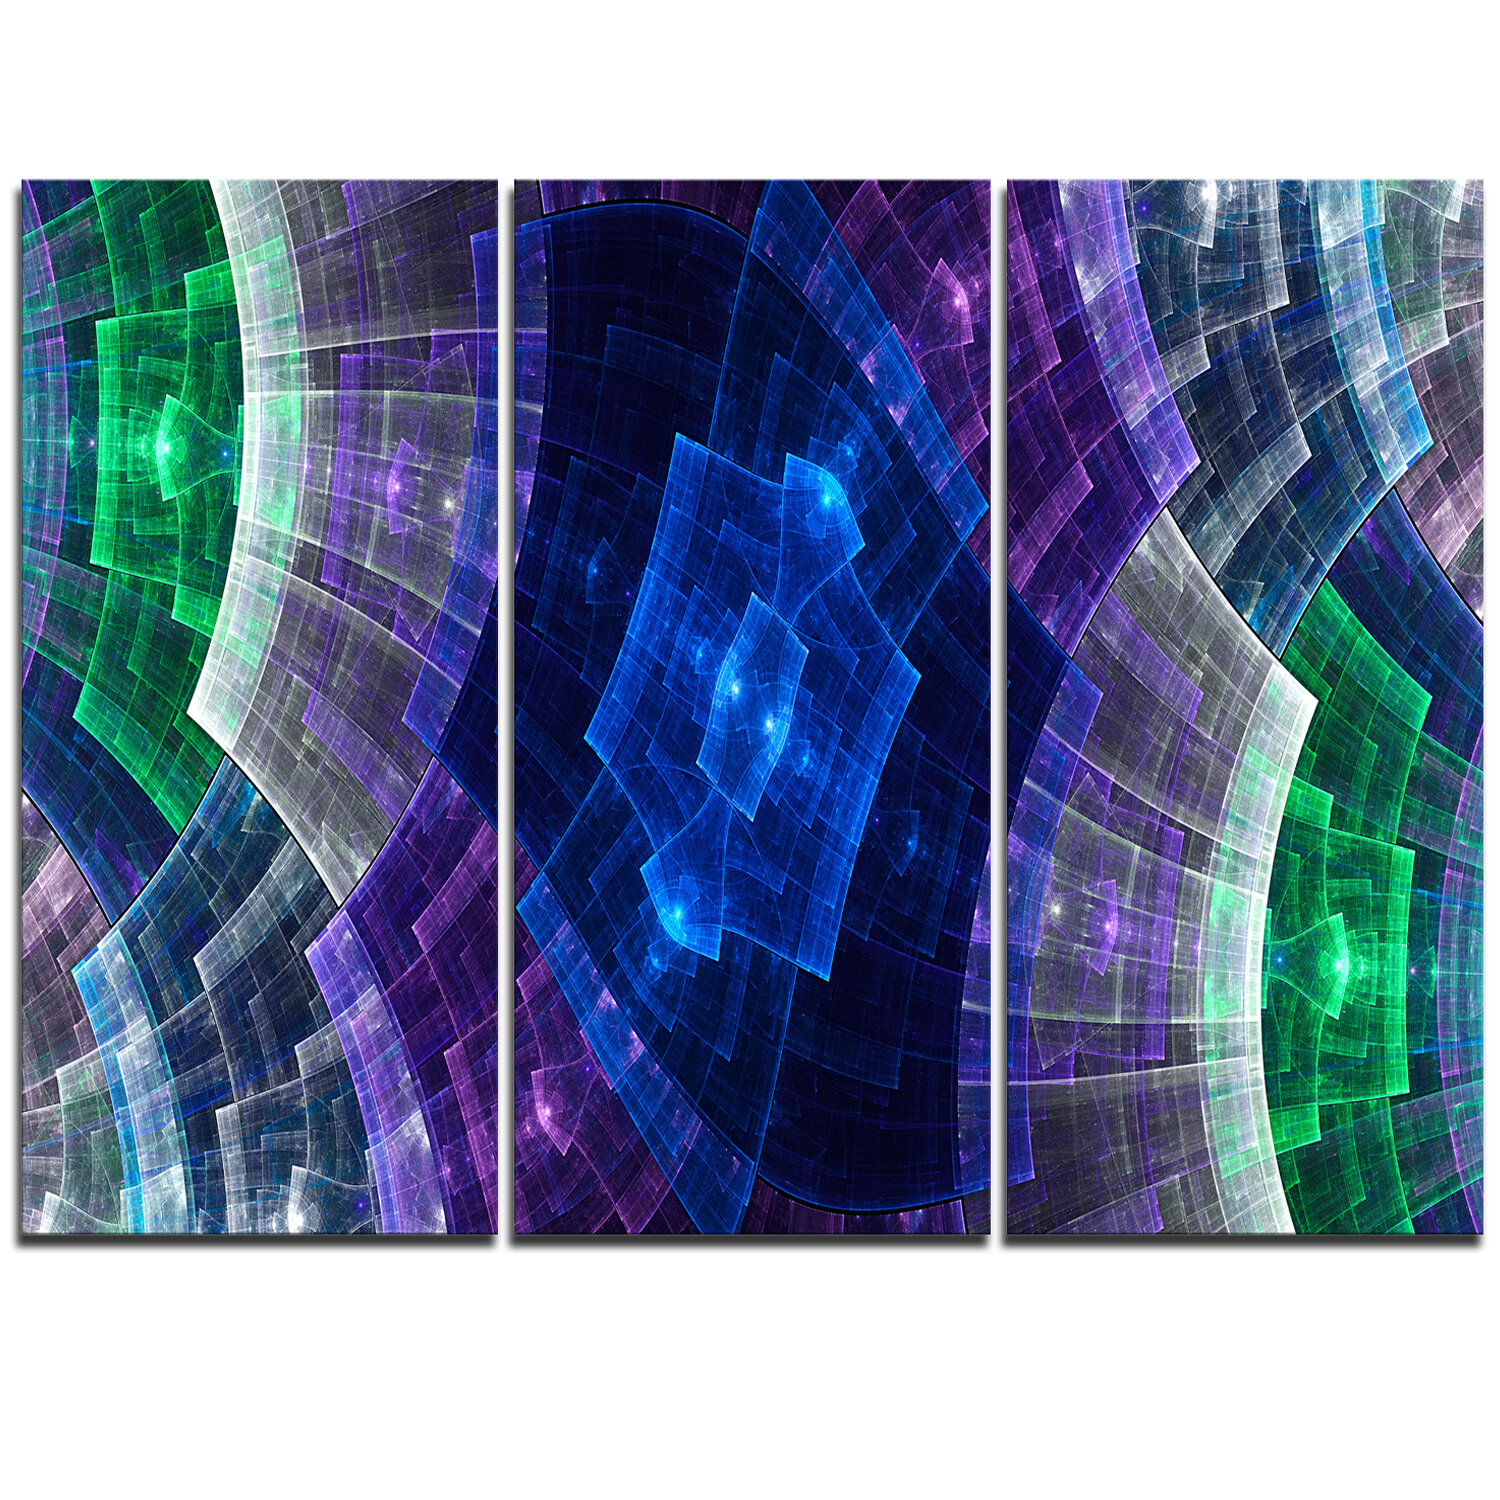 Designart Bright Blue And Green Flower Grid 3 Piece Graphic Art On Wrapped Canvas Set Wayfair